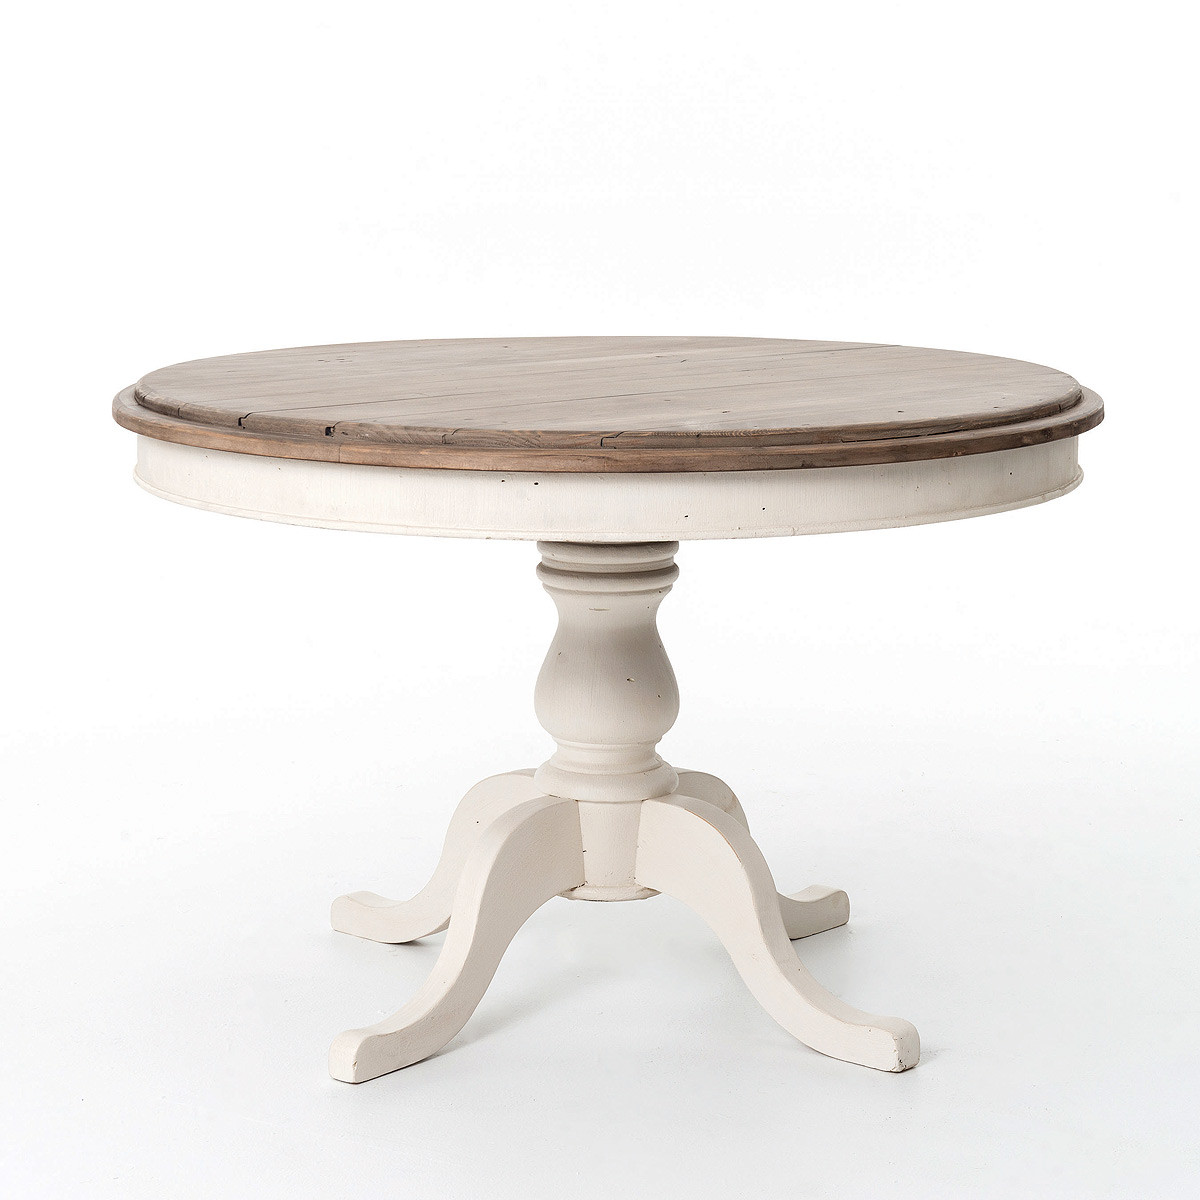 Cottage round pedestal white kitchen table 47 zin home - Pedestal kitchen tables ...